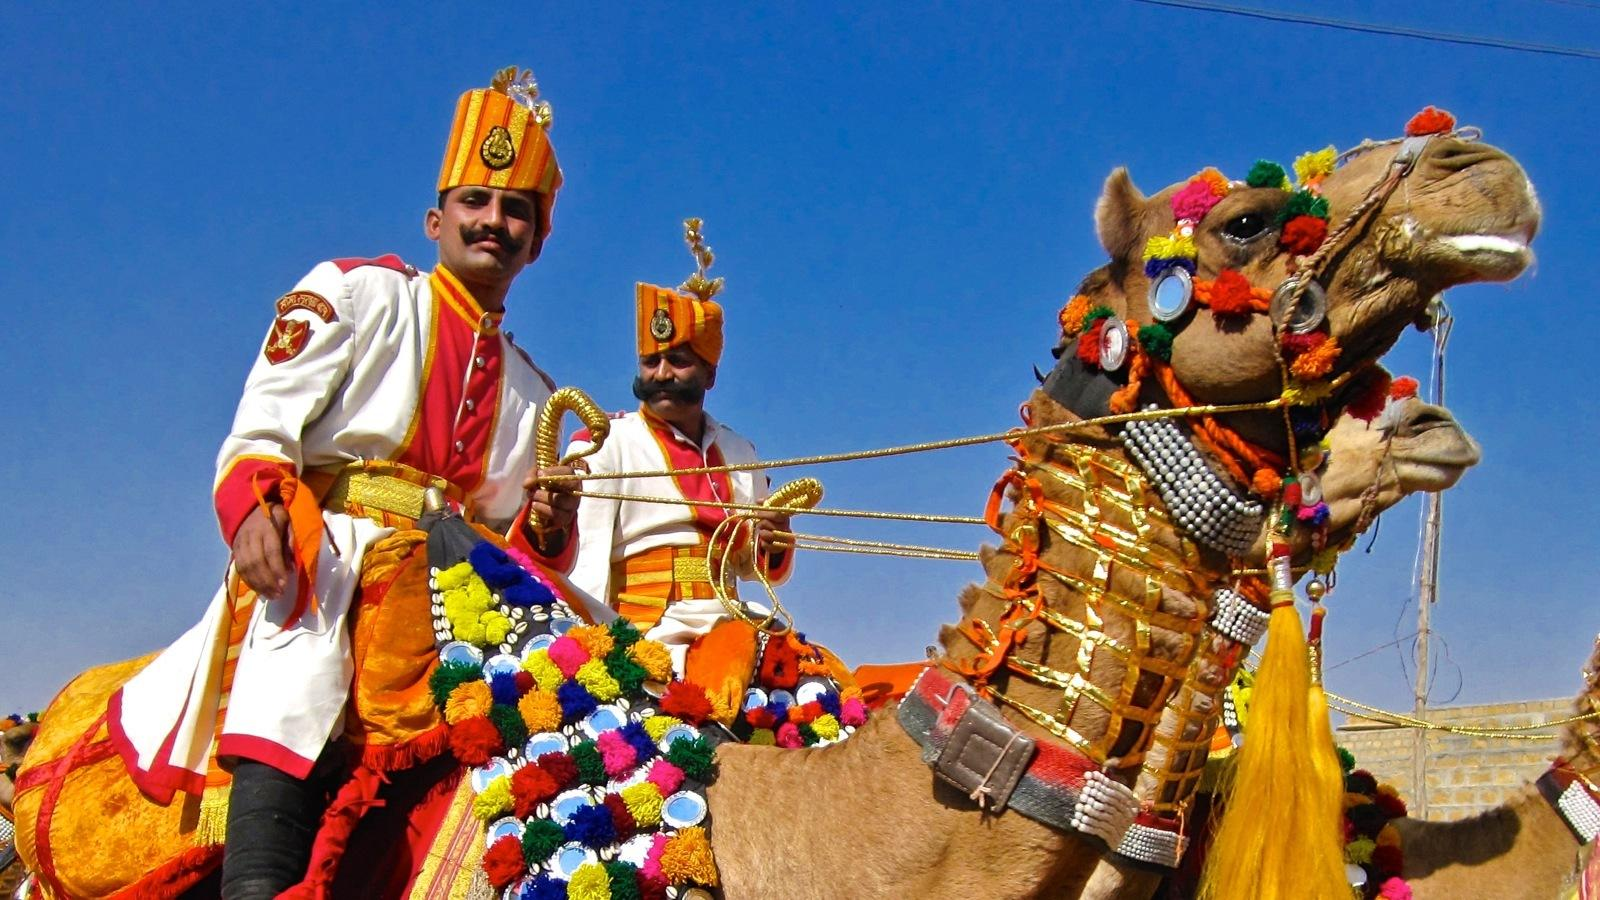 The Jaisalmer Desert Festival Is Rajasthan's Kitsch At Its Finest ...